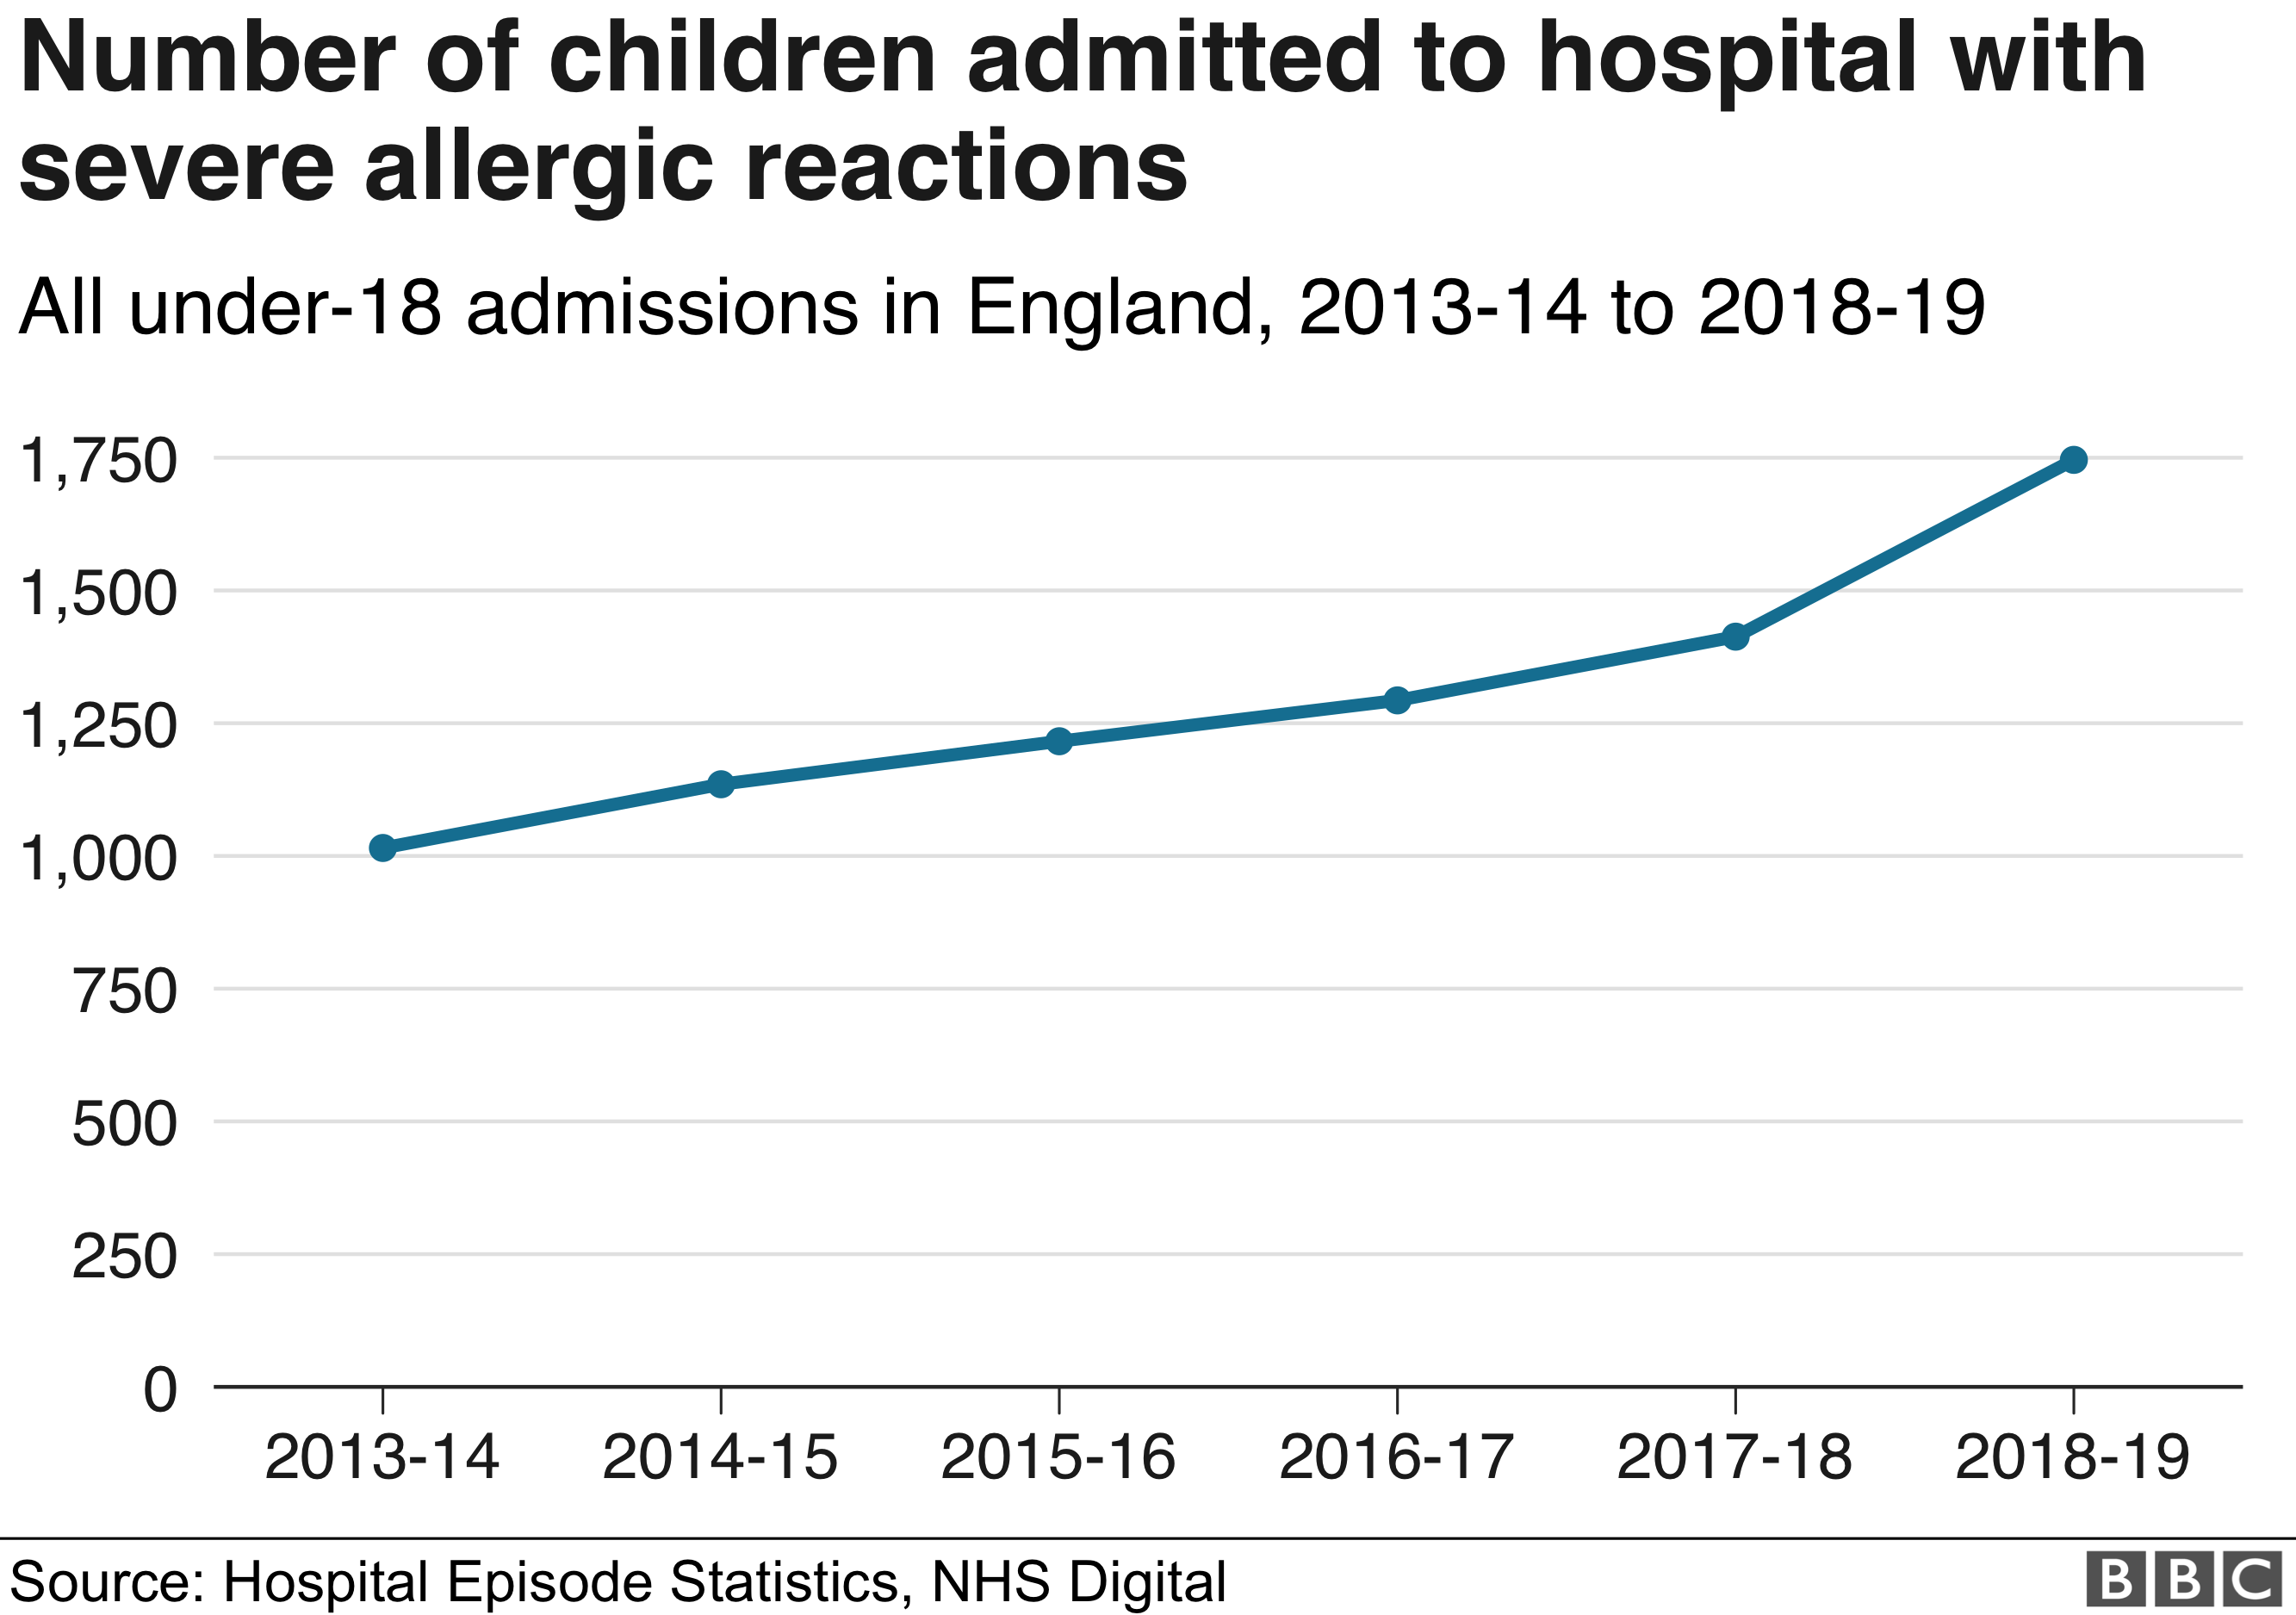 Children admitted to hospital with severe allergic reactions